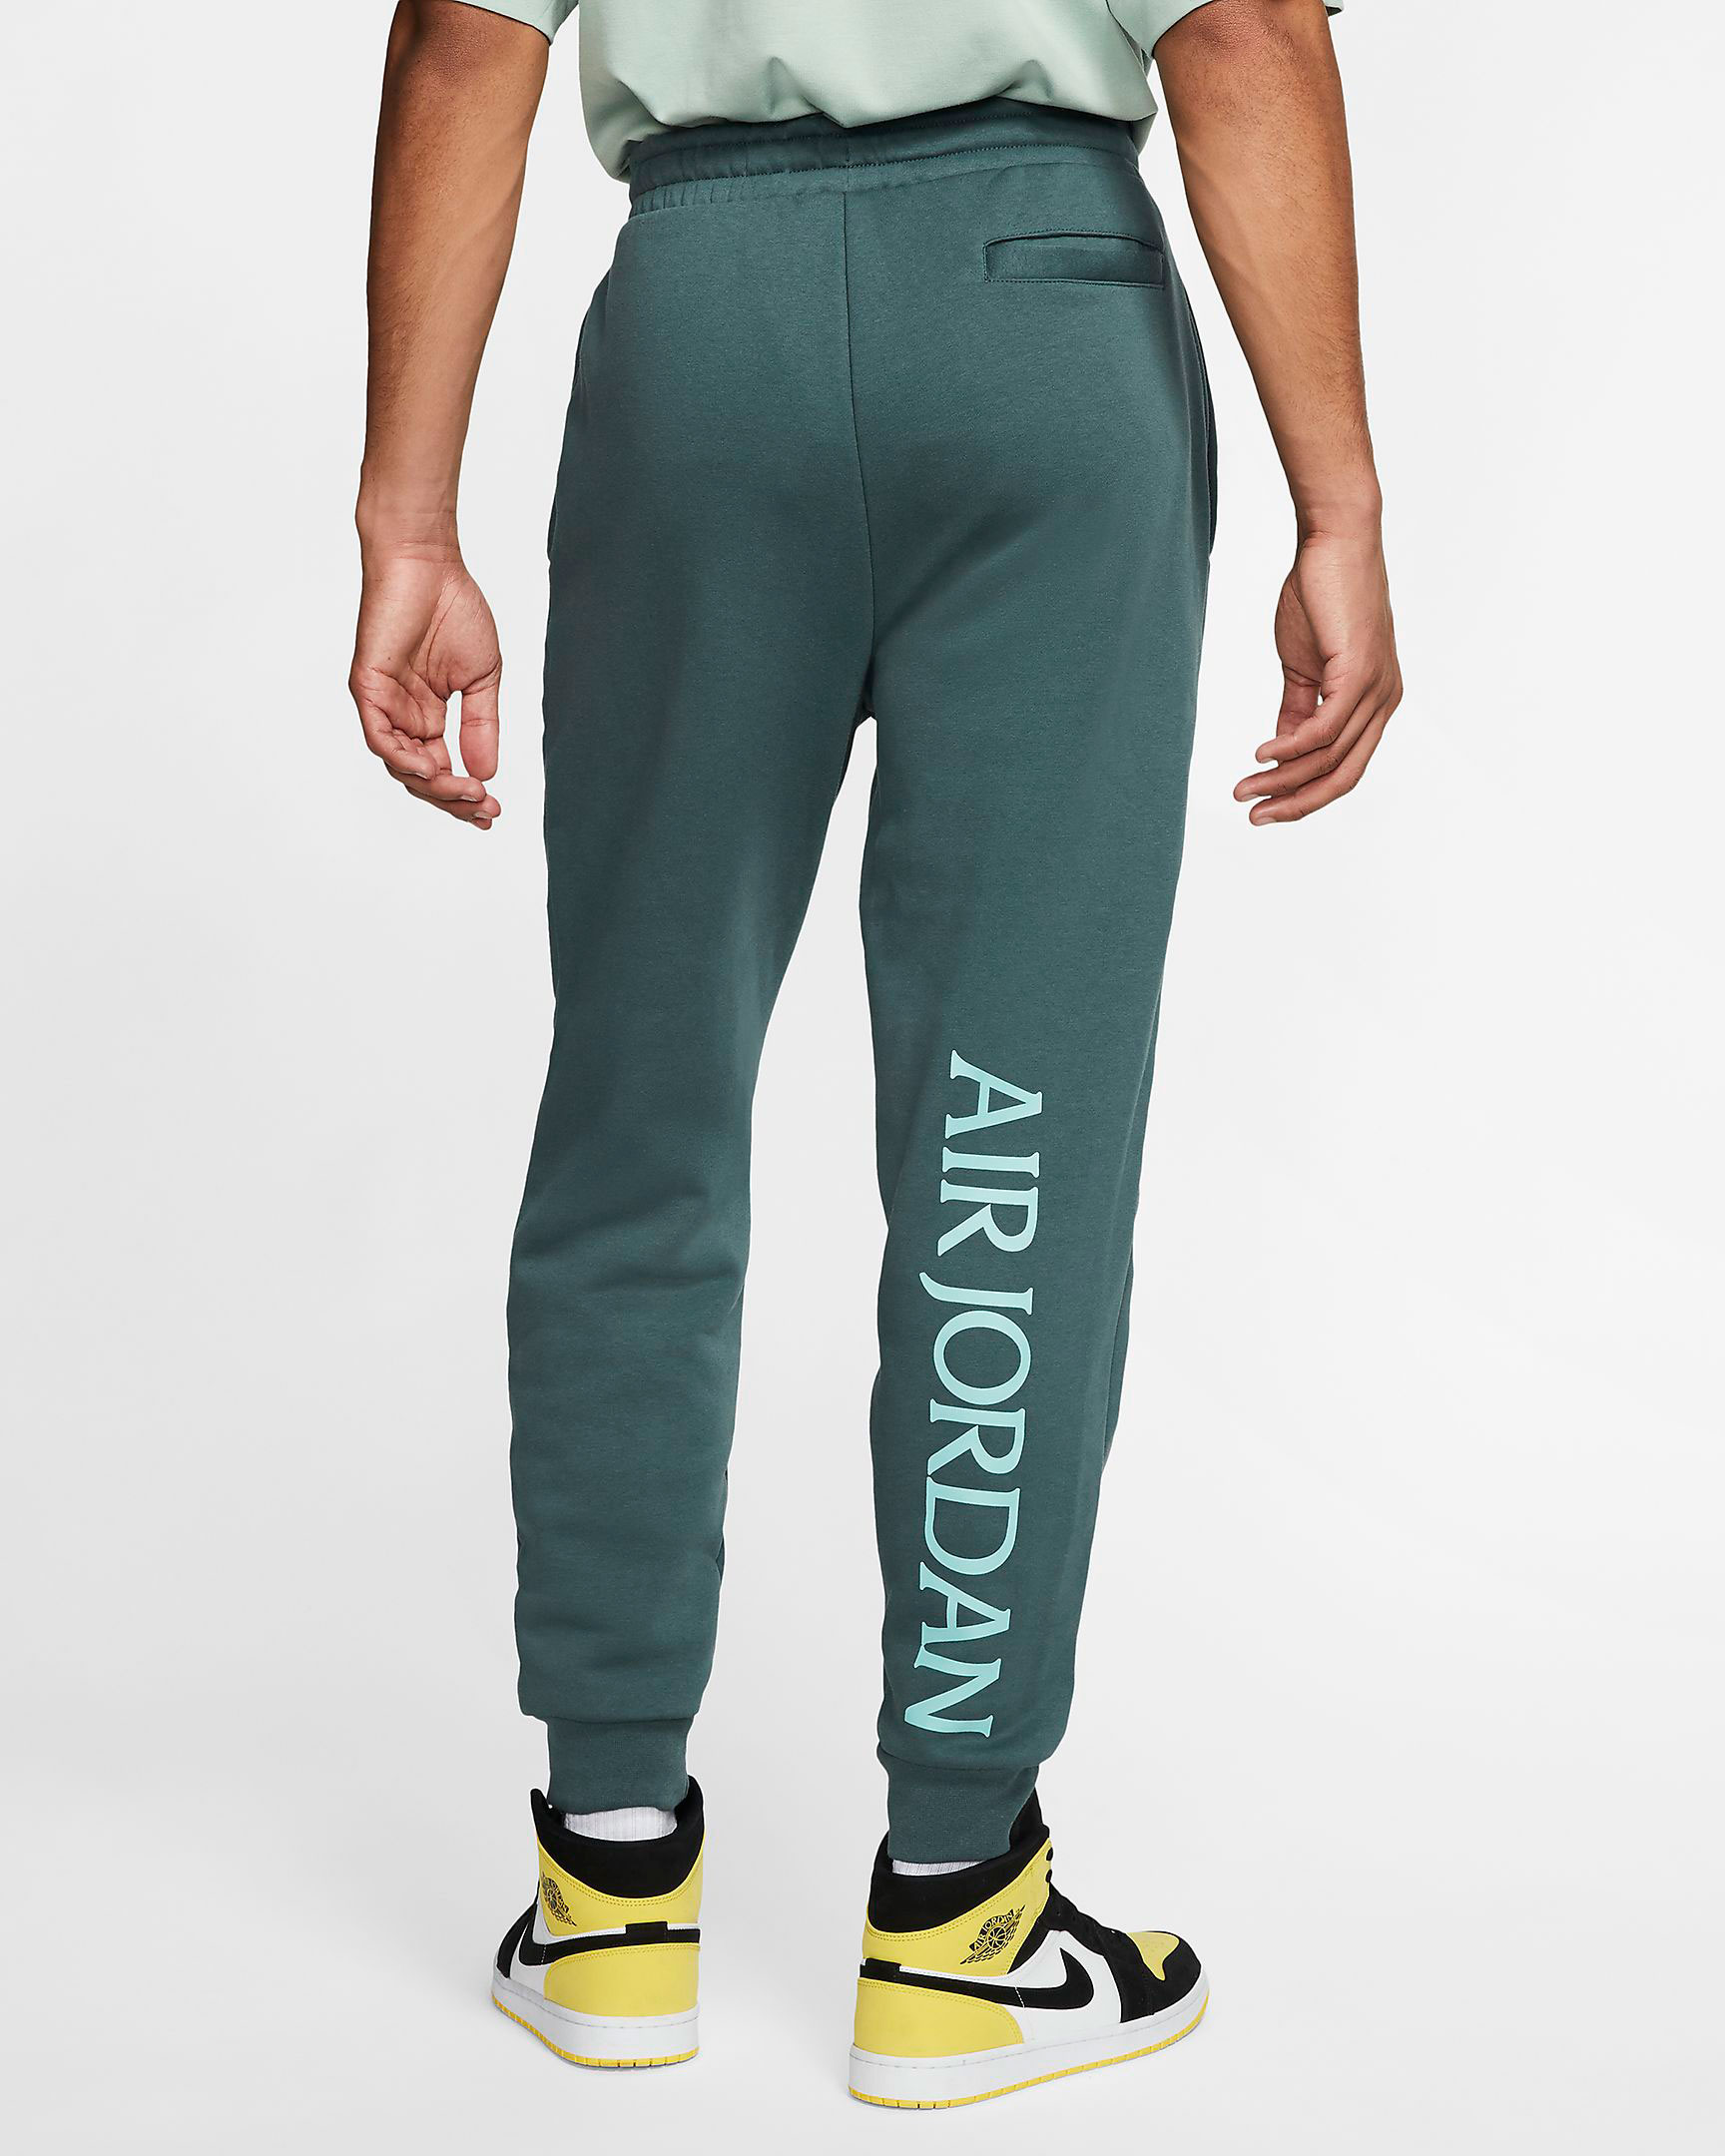 air-jordan-island-green-jogger-pants-2